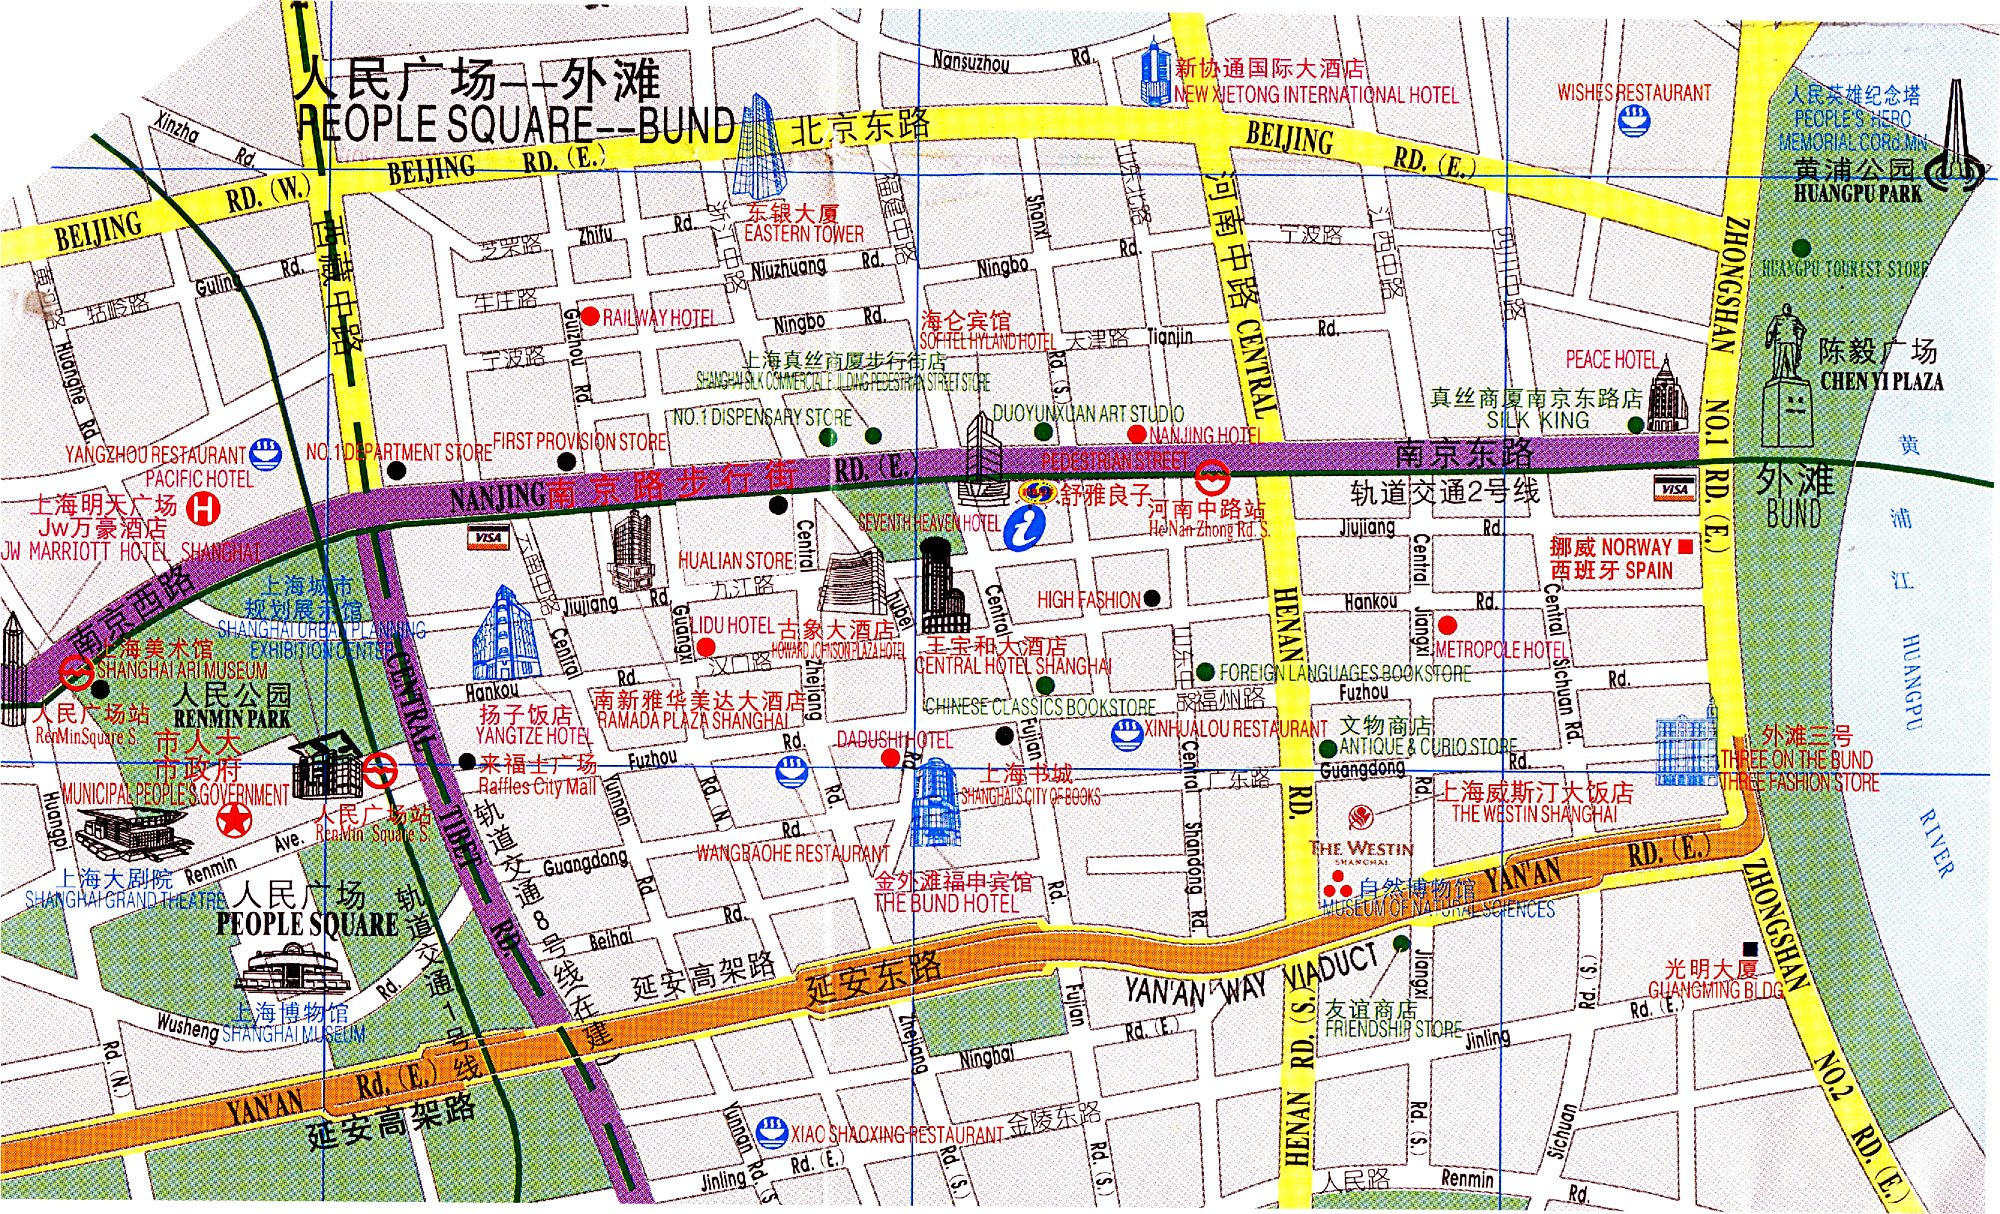 People square bund map